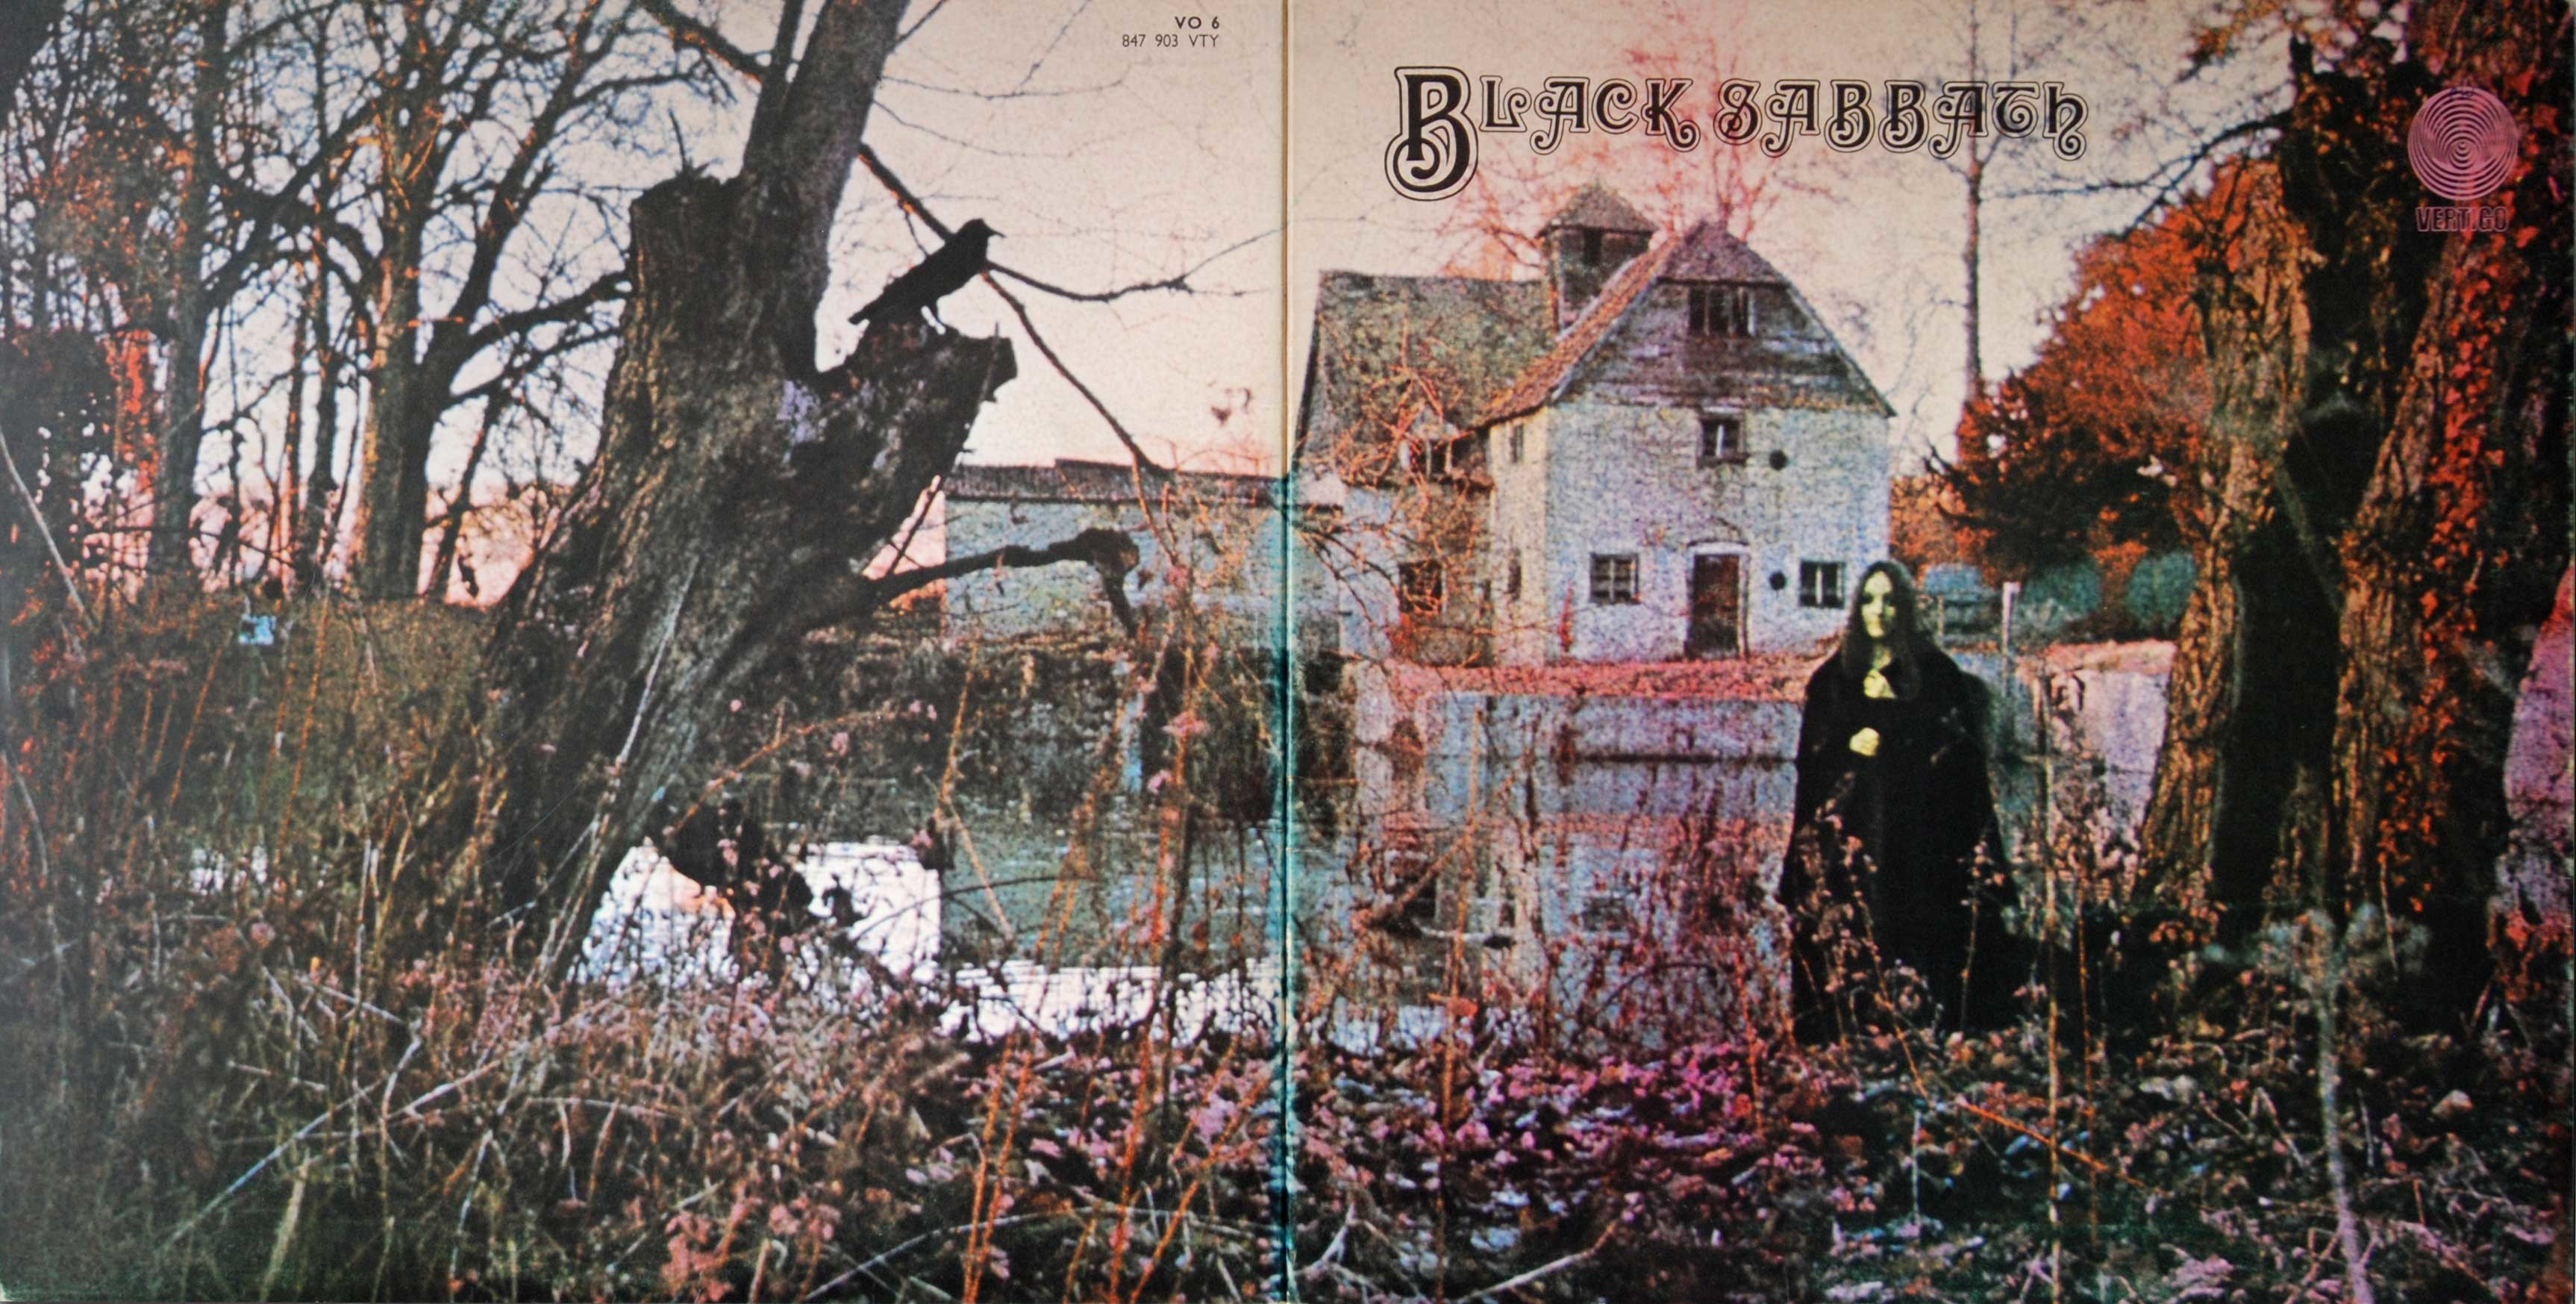 3452x1747 3452 x 1747Black Sabbath (album cover art) [3452 x 1747] ...